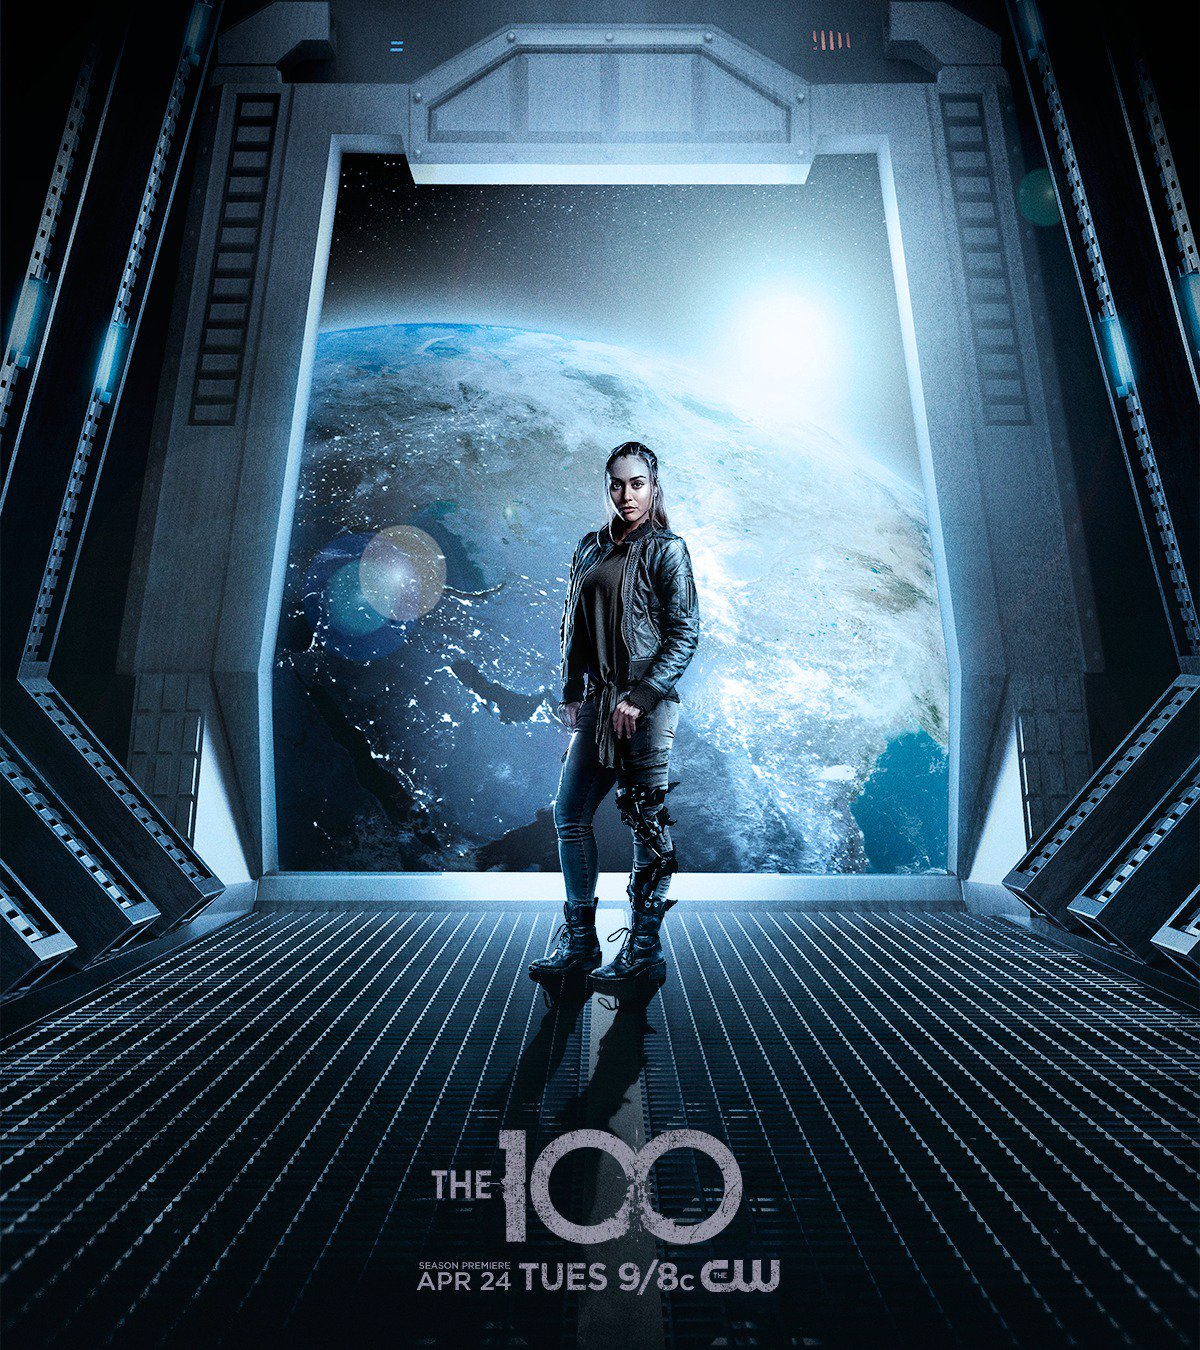 Live to spacewalk. #The100 returns Tuesday, April 24 at 9/8c on The CW! https://t.co/WyE8oi6Ci8